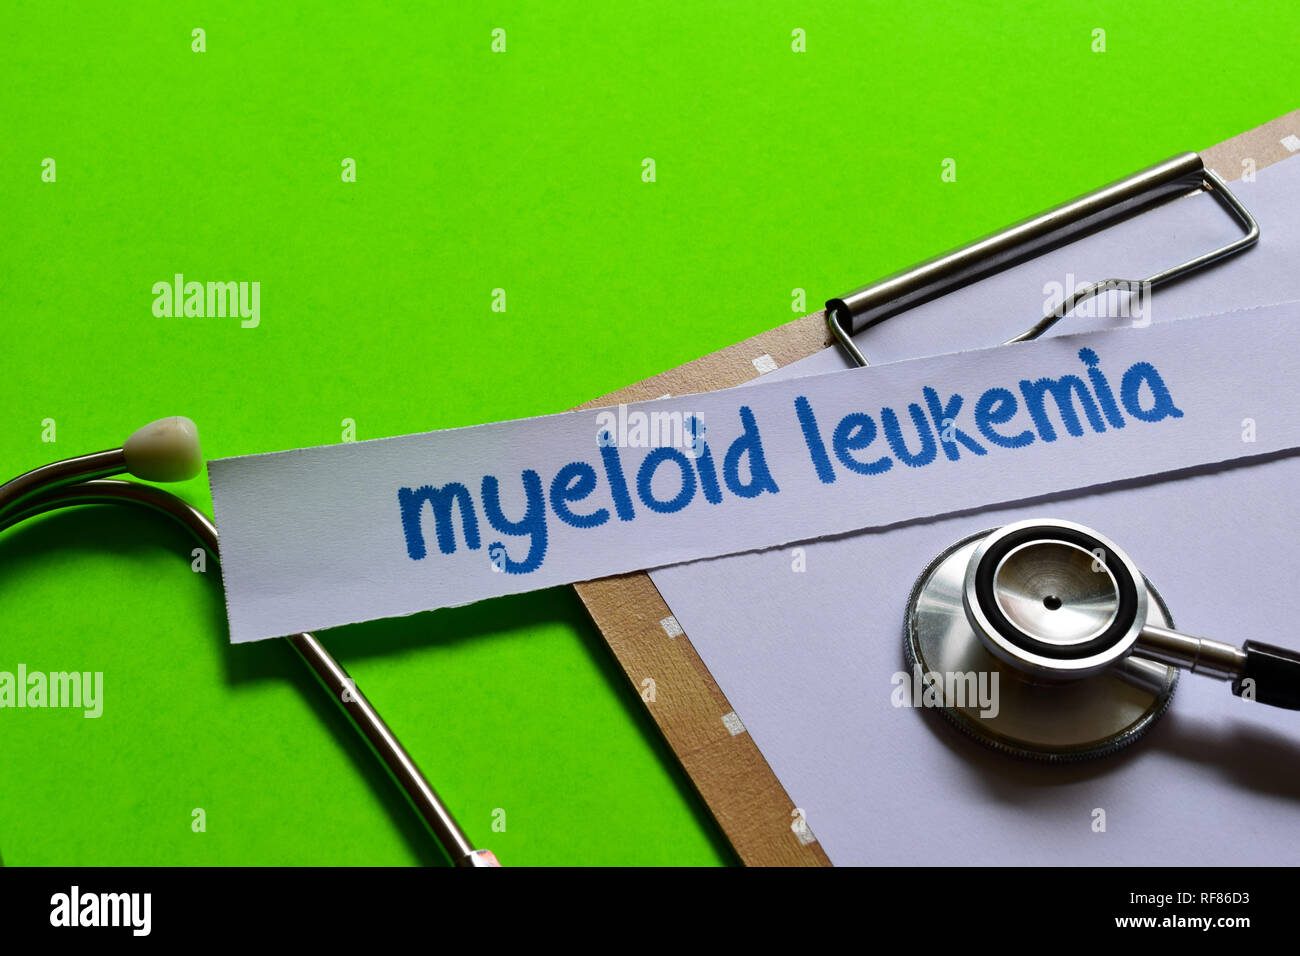 Myeloid leukemia on healthcare concept inspiration with green background - Stock Image